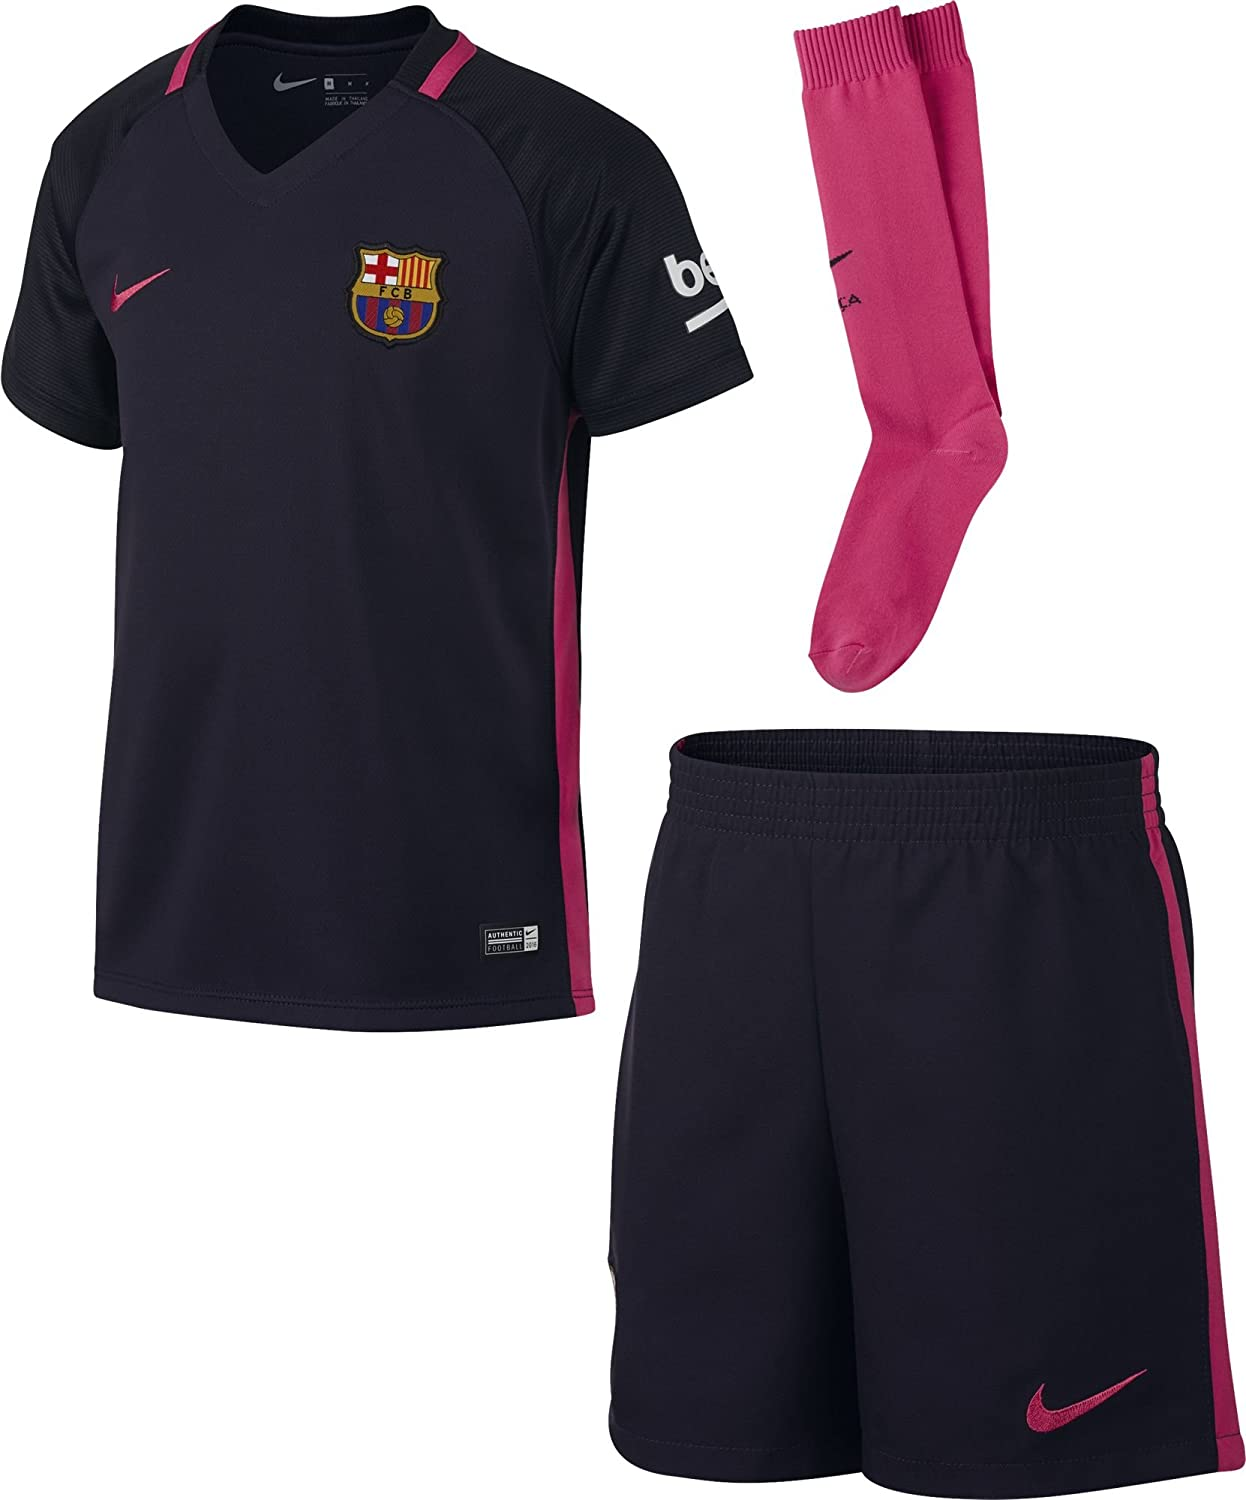 2016-2017 Barcelona Away Nike Little Boys Mini Kit B007TARHGOPurple SB 4/5yrs (104-110cm)